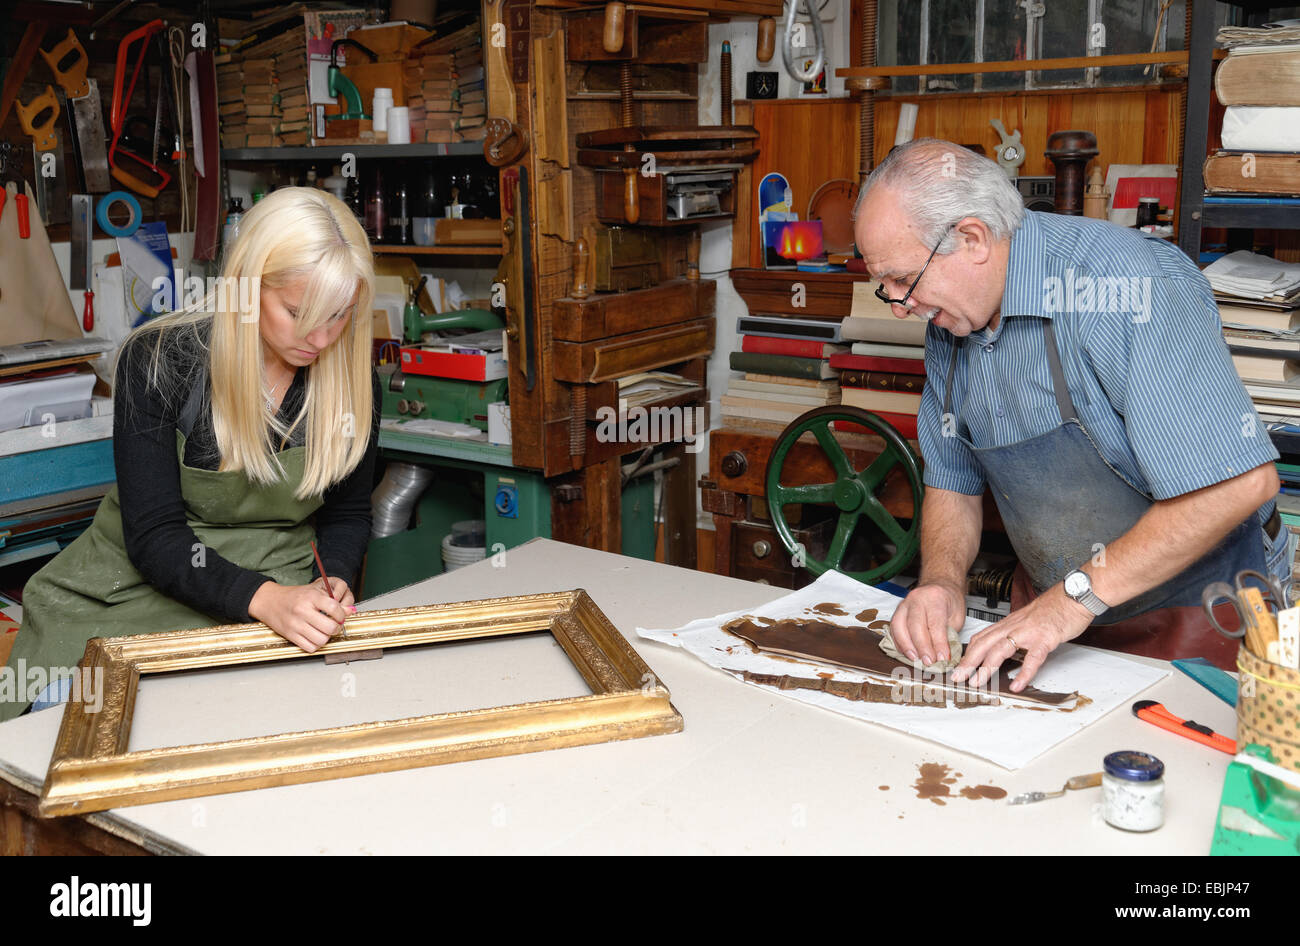 Senior man and young woman restoring picture frame and book spine in traditional bookbinding workshop - Stock Image